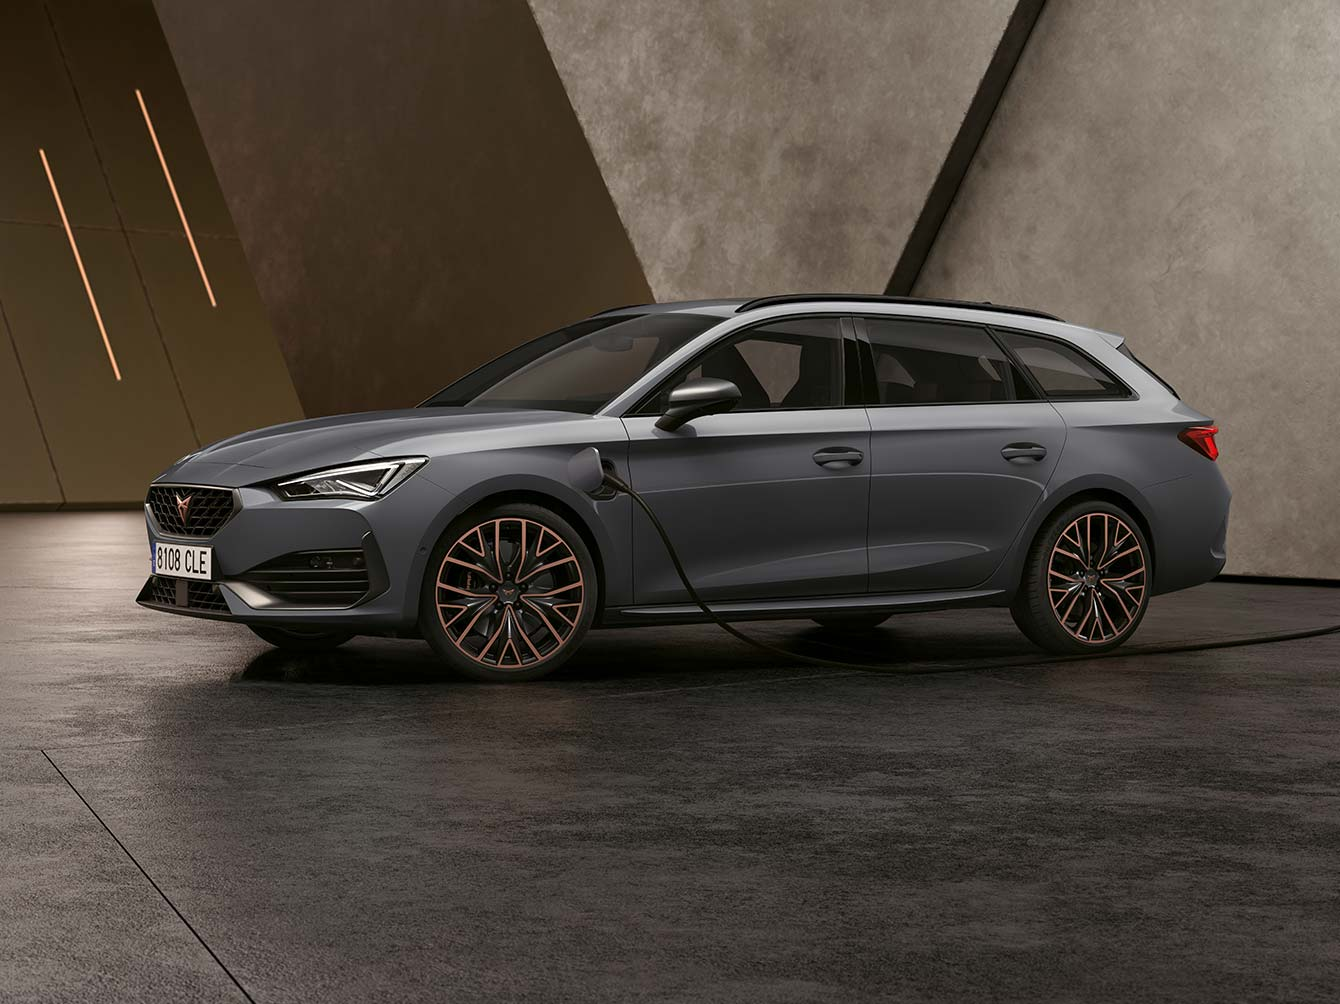 new-cupra-leon-ehybrid-five-door-magnetic-tech-matte-compact-sports-car-with-60km-of-electric-range.jpg